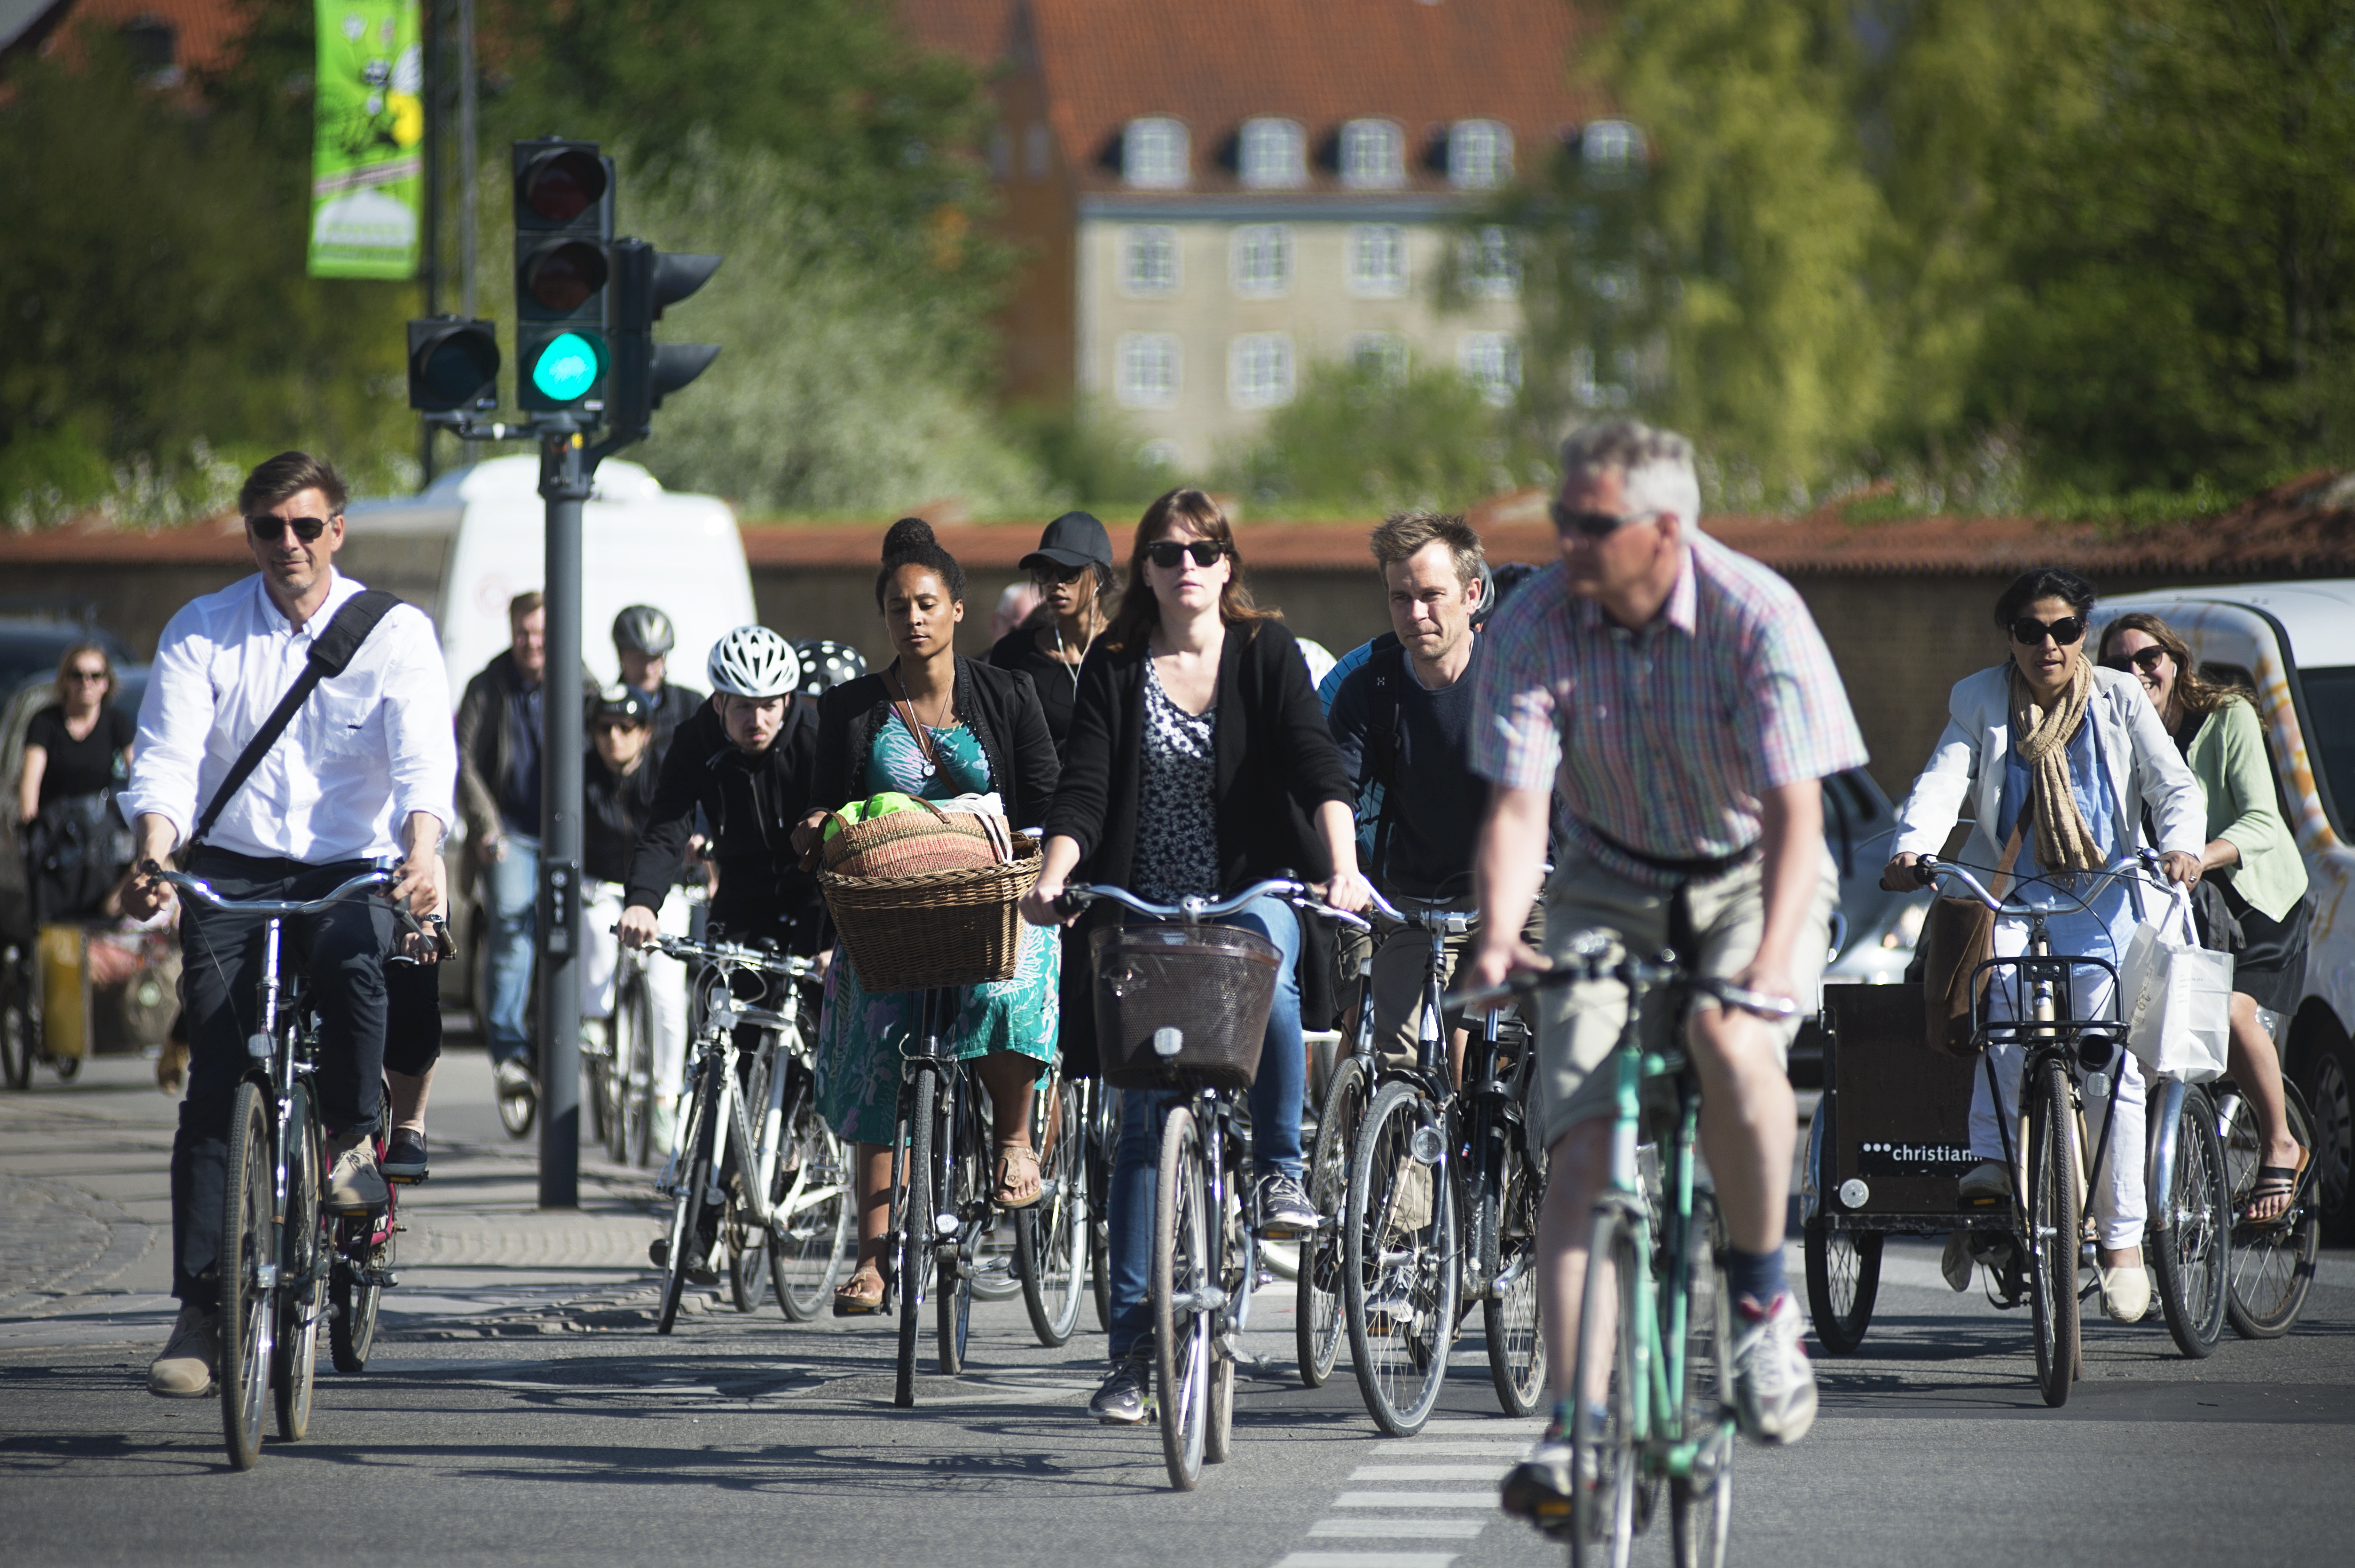 Why do Danes cycle so much? A journey back into Denmark's history shows how and why Copenhagen and other Danish cities have managed to maintain a flourishing bicycle culture despite some bumps in the road.